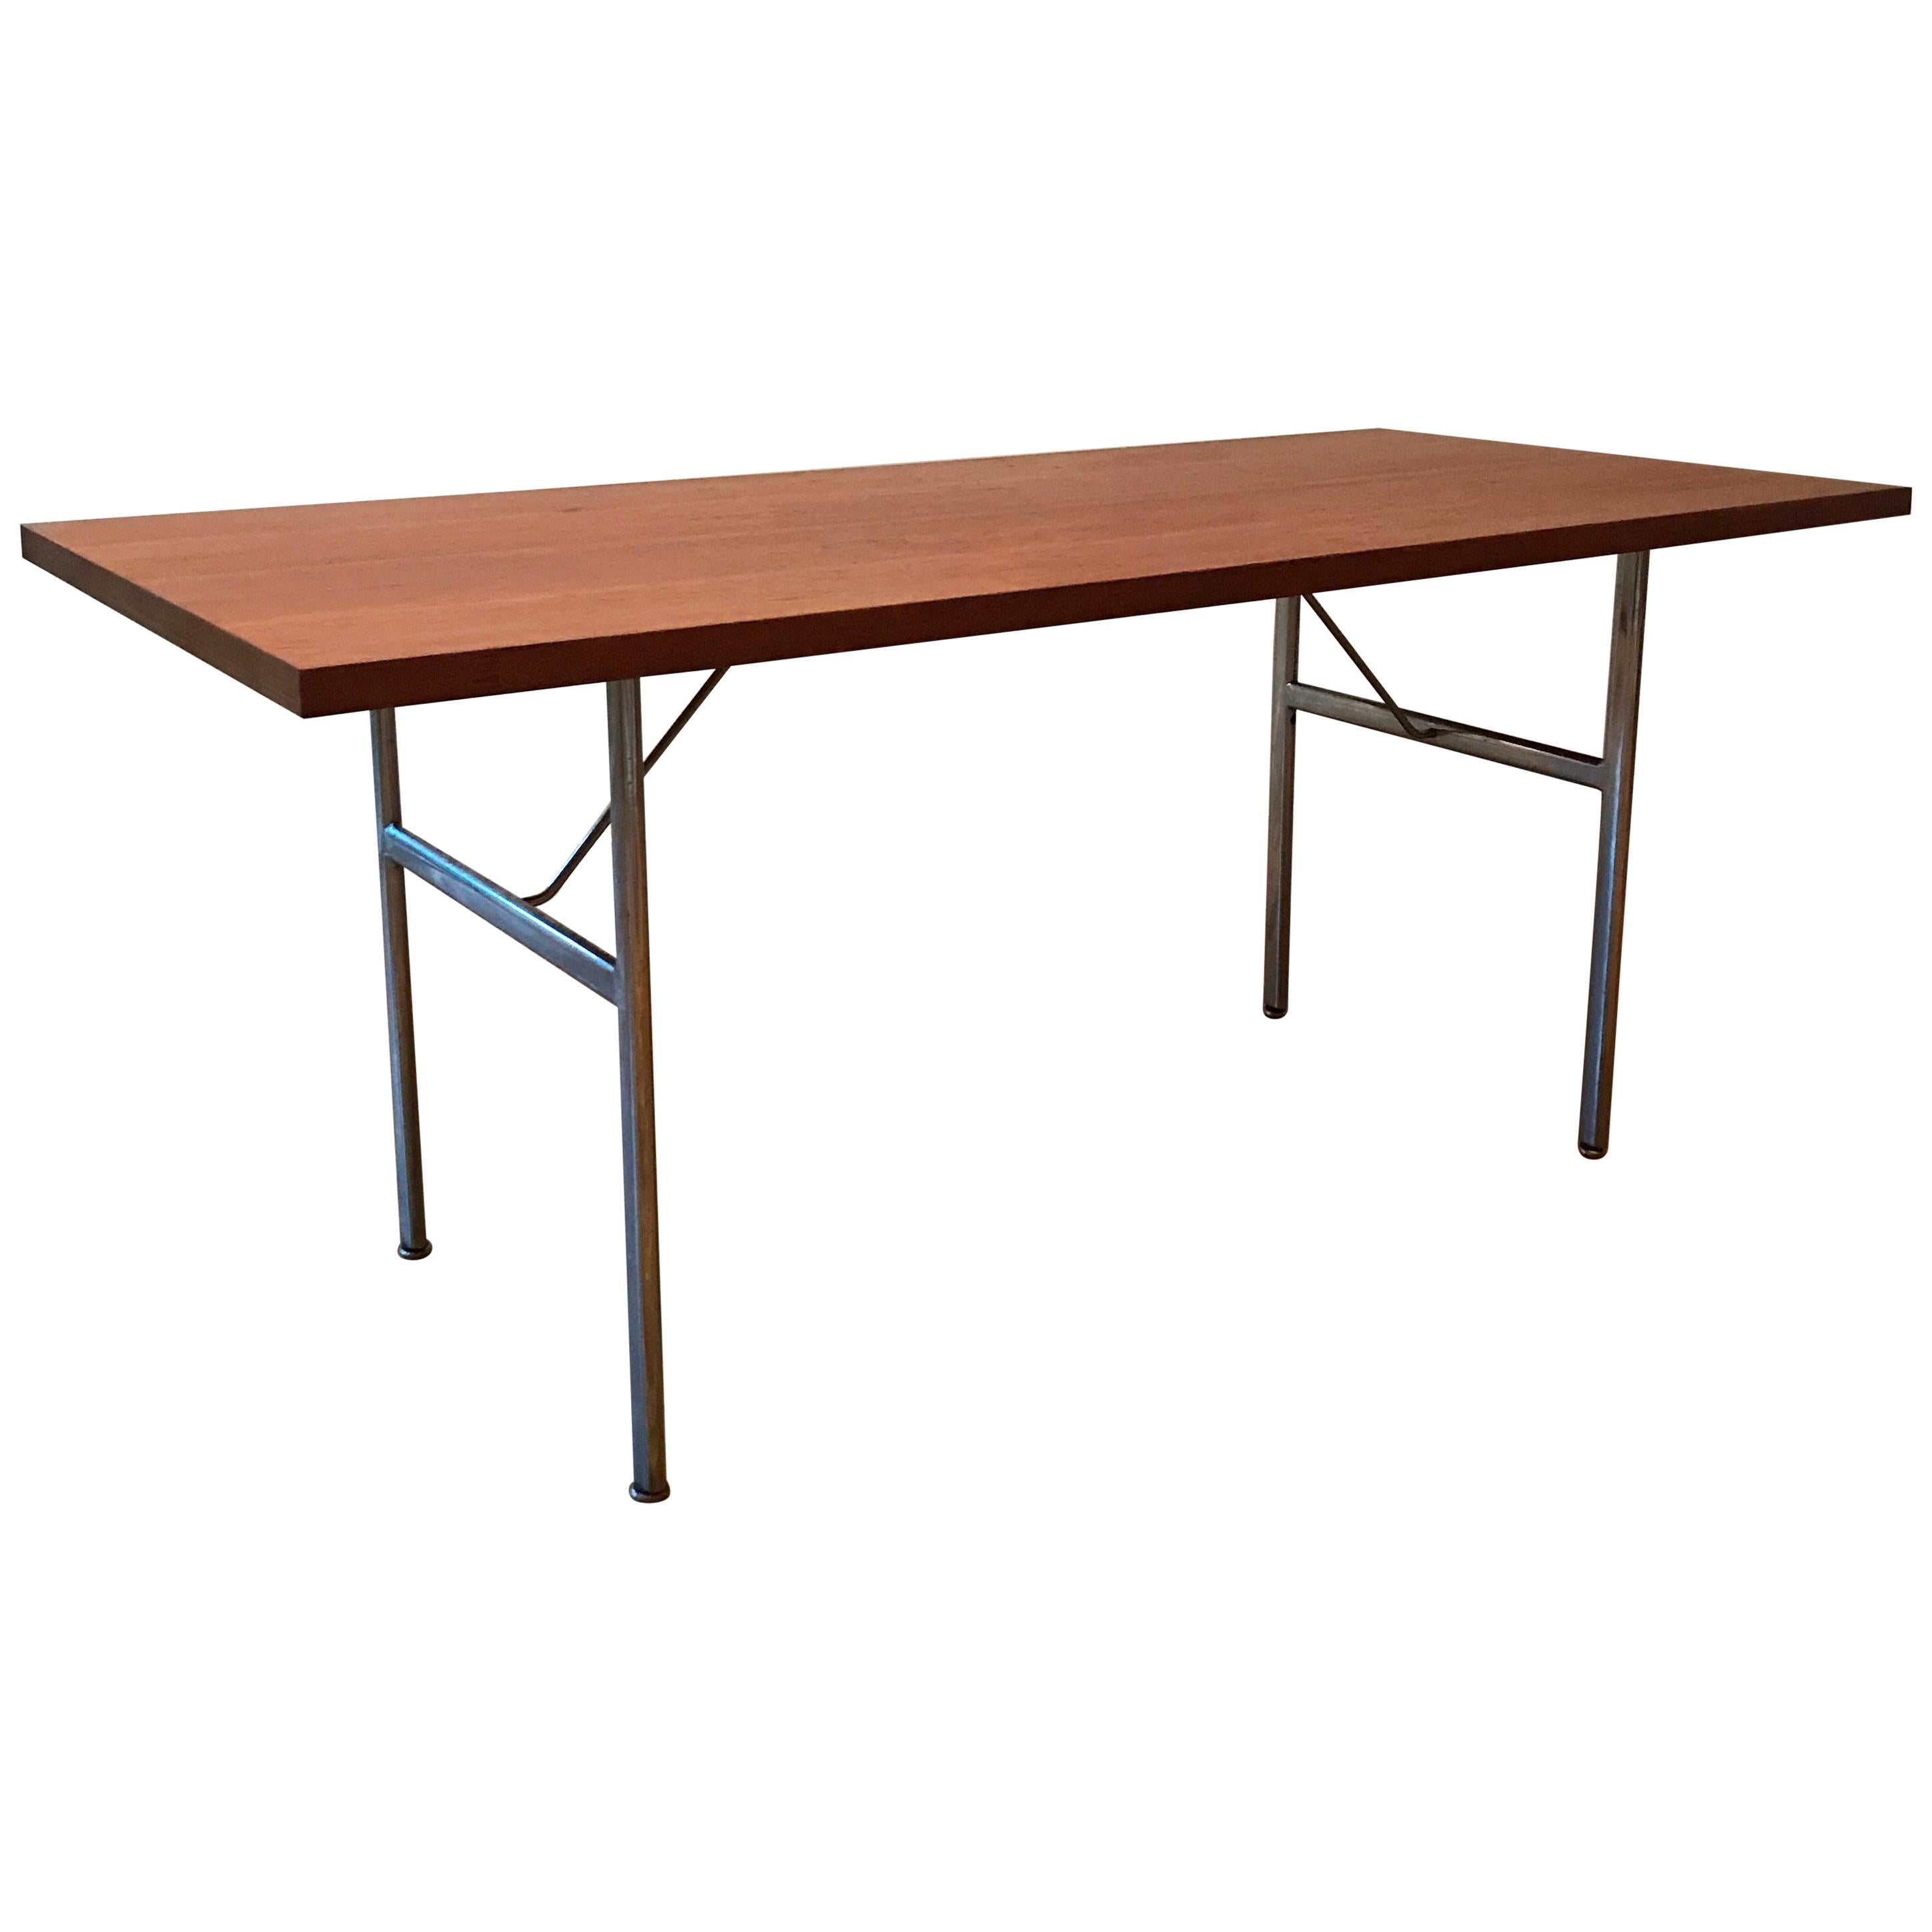 George Nelson For Herman Miller Steel Frame Dining Table For Sale